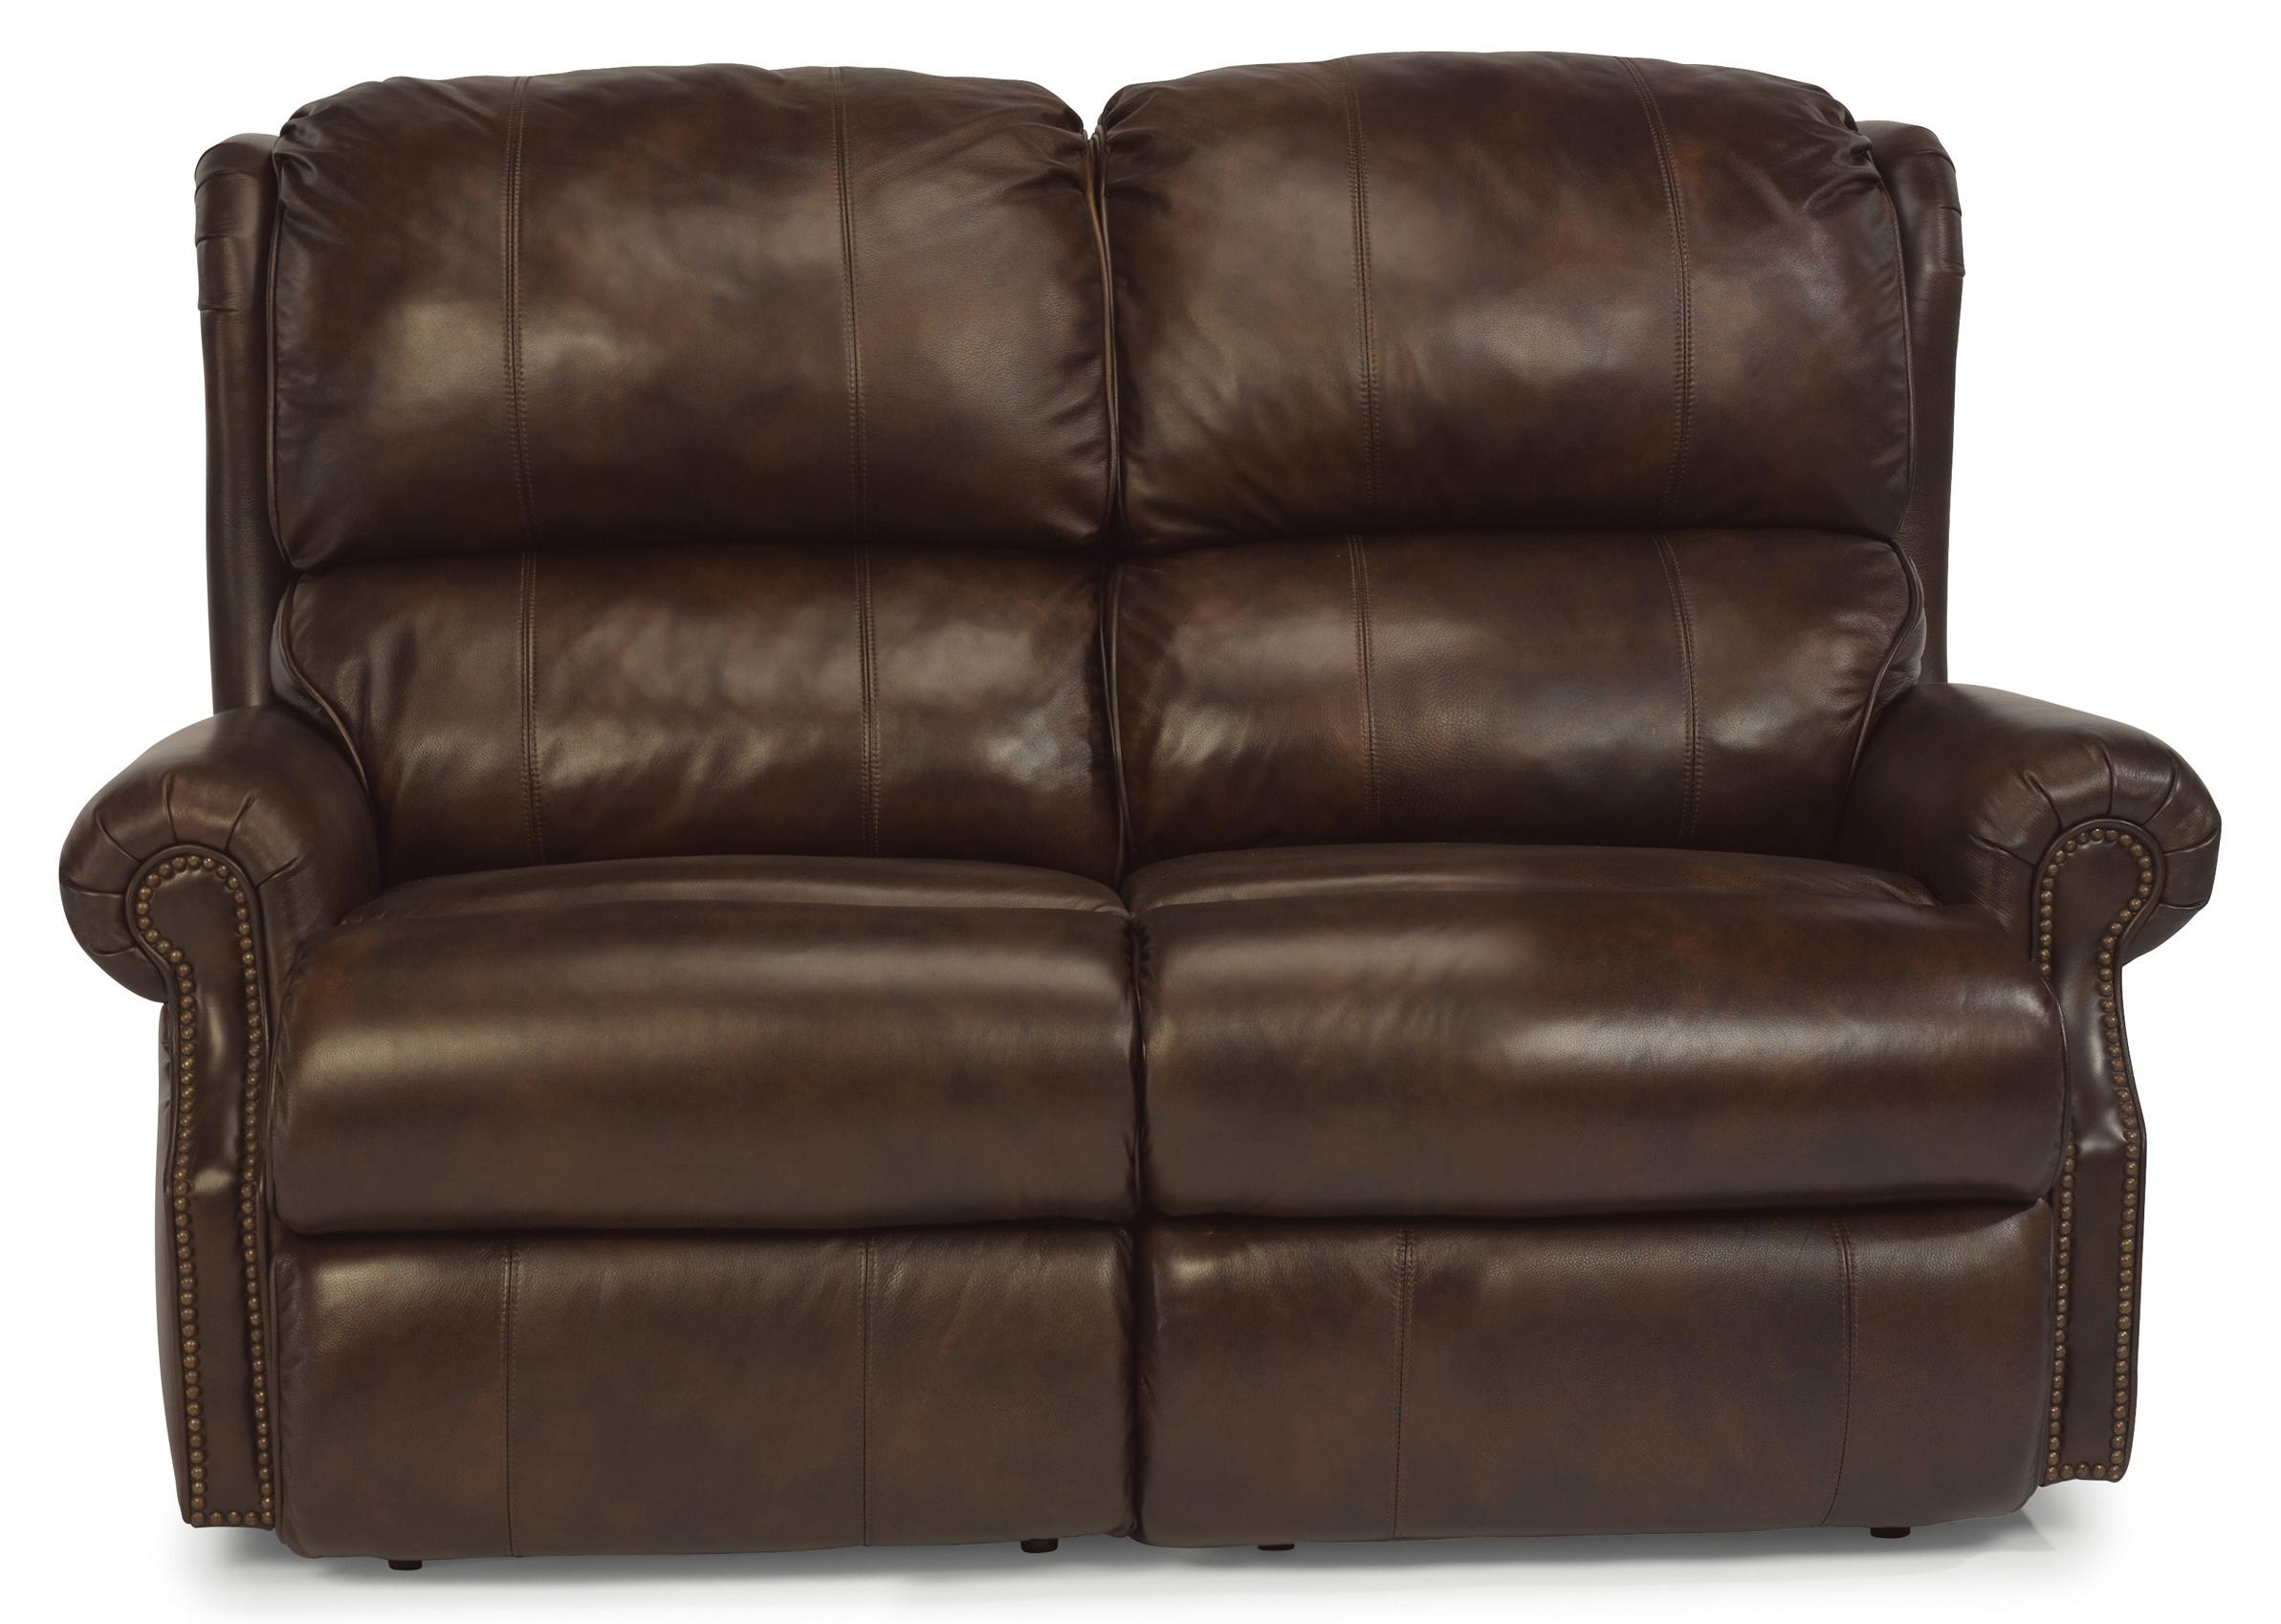 Flexsteel Latitudes - Comfort Zone Power Reclining Loveseat - Item Number: 1227-60P